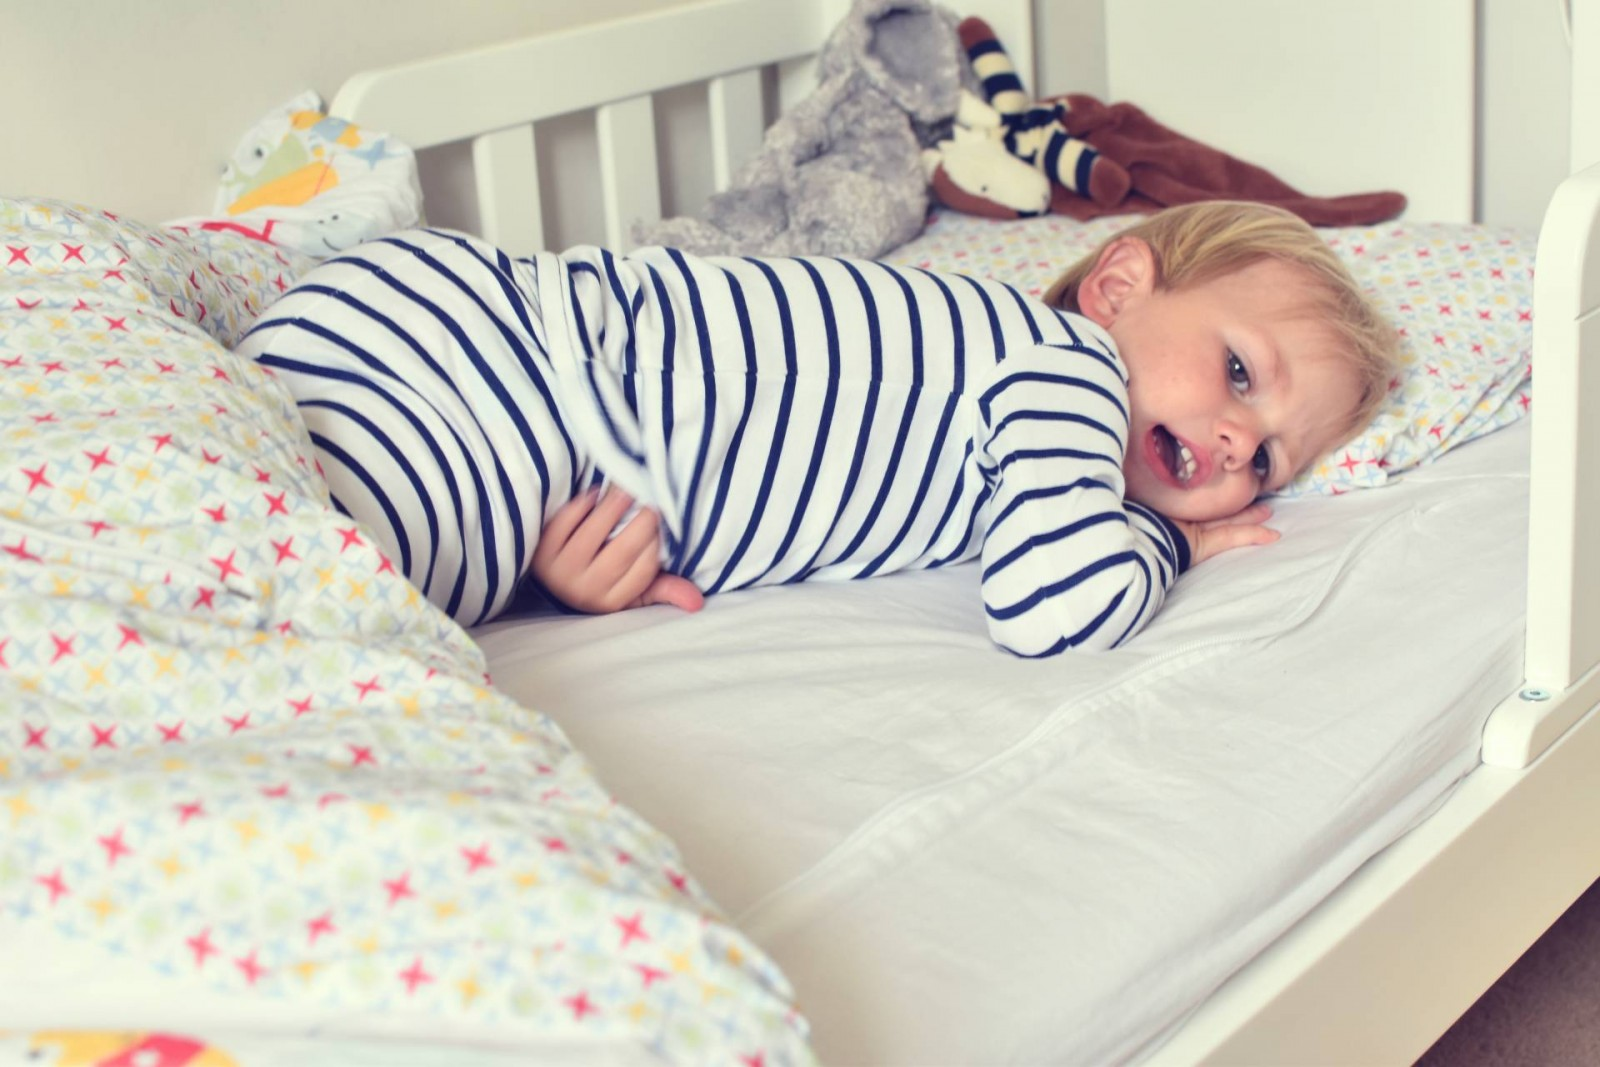 creating a safe, natural bedroom as part of our toddler makeover